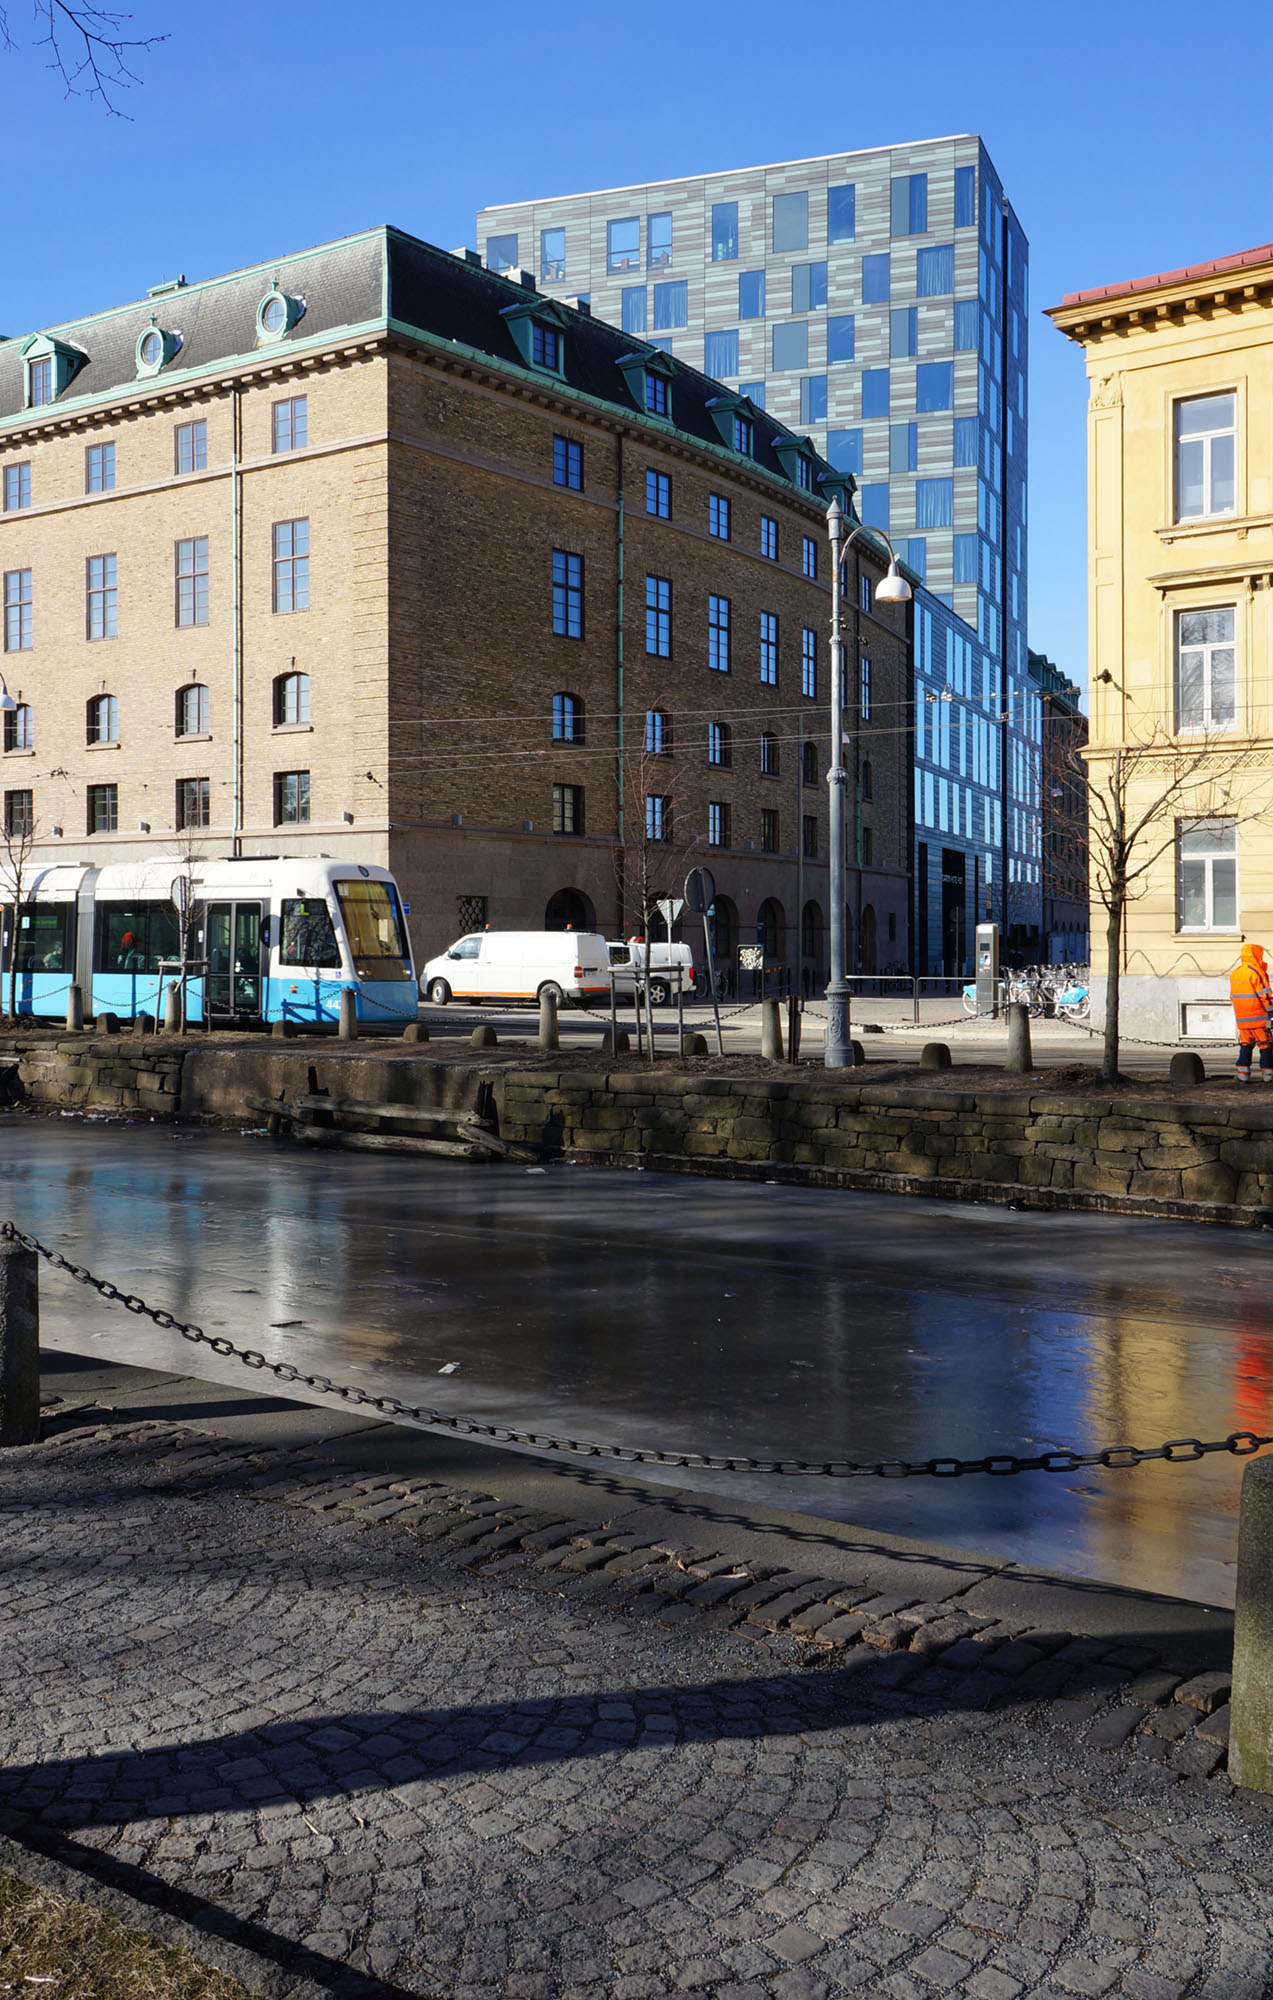 Streetside view of the Post Hotel located in Gothenburg, Sweden. The copper facade clad from Nordic Green Living copper is visible in the background. The sky is blue and it is daytime. There is ice inbetween the roads in front of the picture. A tram is visible.